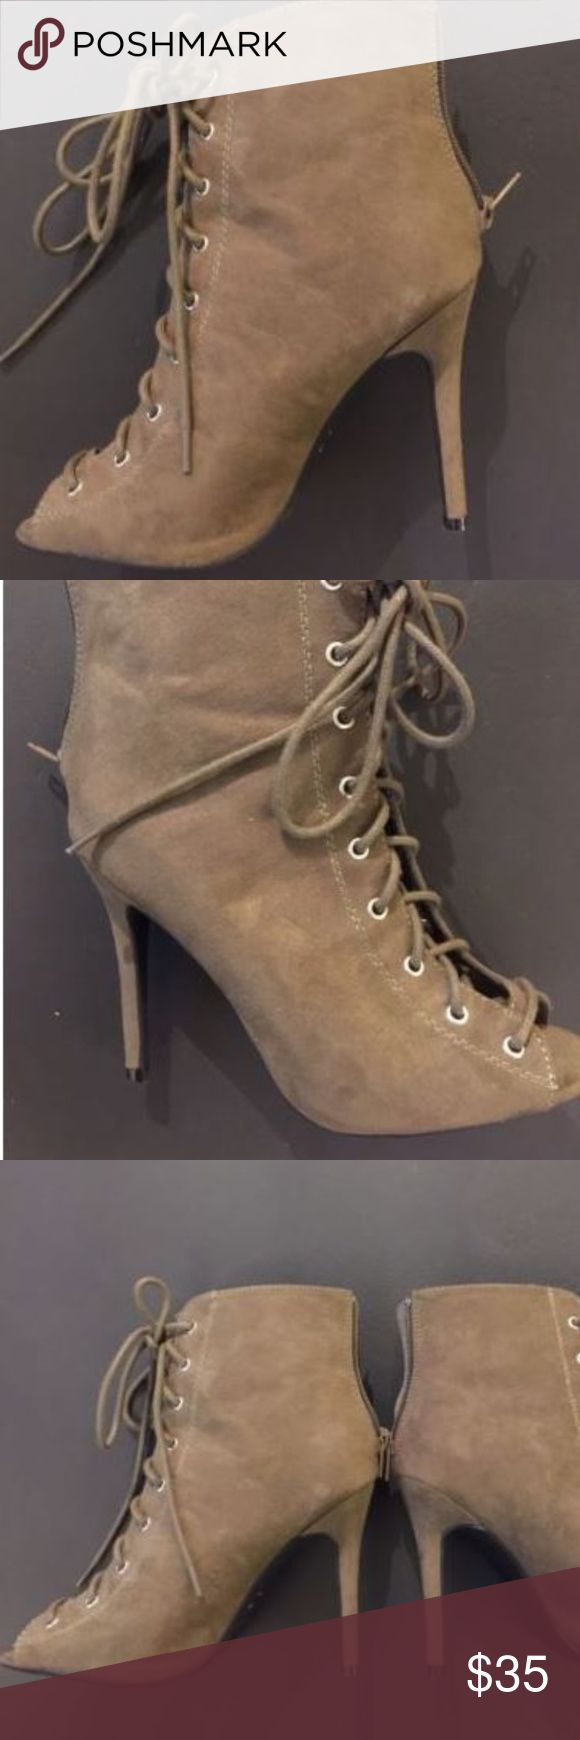 Charlotte Russe Olive Green Suede Lace Up Bootie Charlotte Russe Olive Green Suede Lace Up Bootie, Size 6 Womens  Elegant Tie up Sandal High Heel, Great for any occasion, Show off your dainty digits with these peep toe heels Charlotte Russe Shoes Ankle Boots & Booties